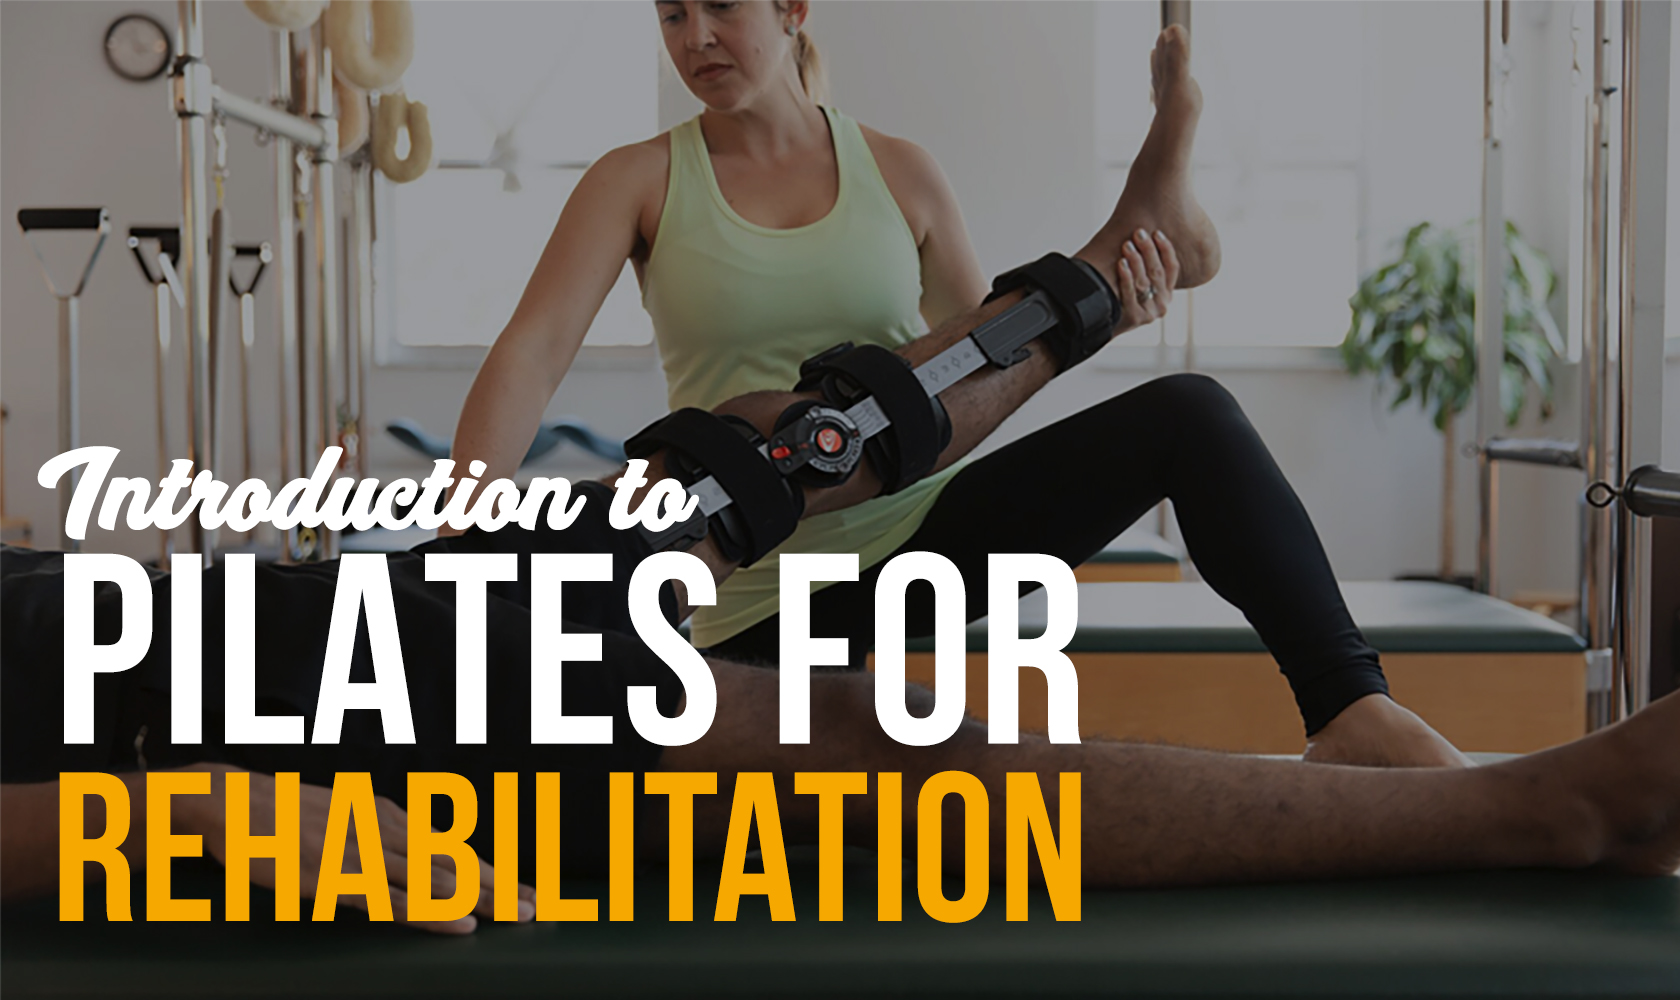 Introduction to Pilates for Rehabilitation